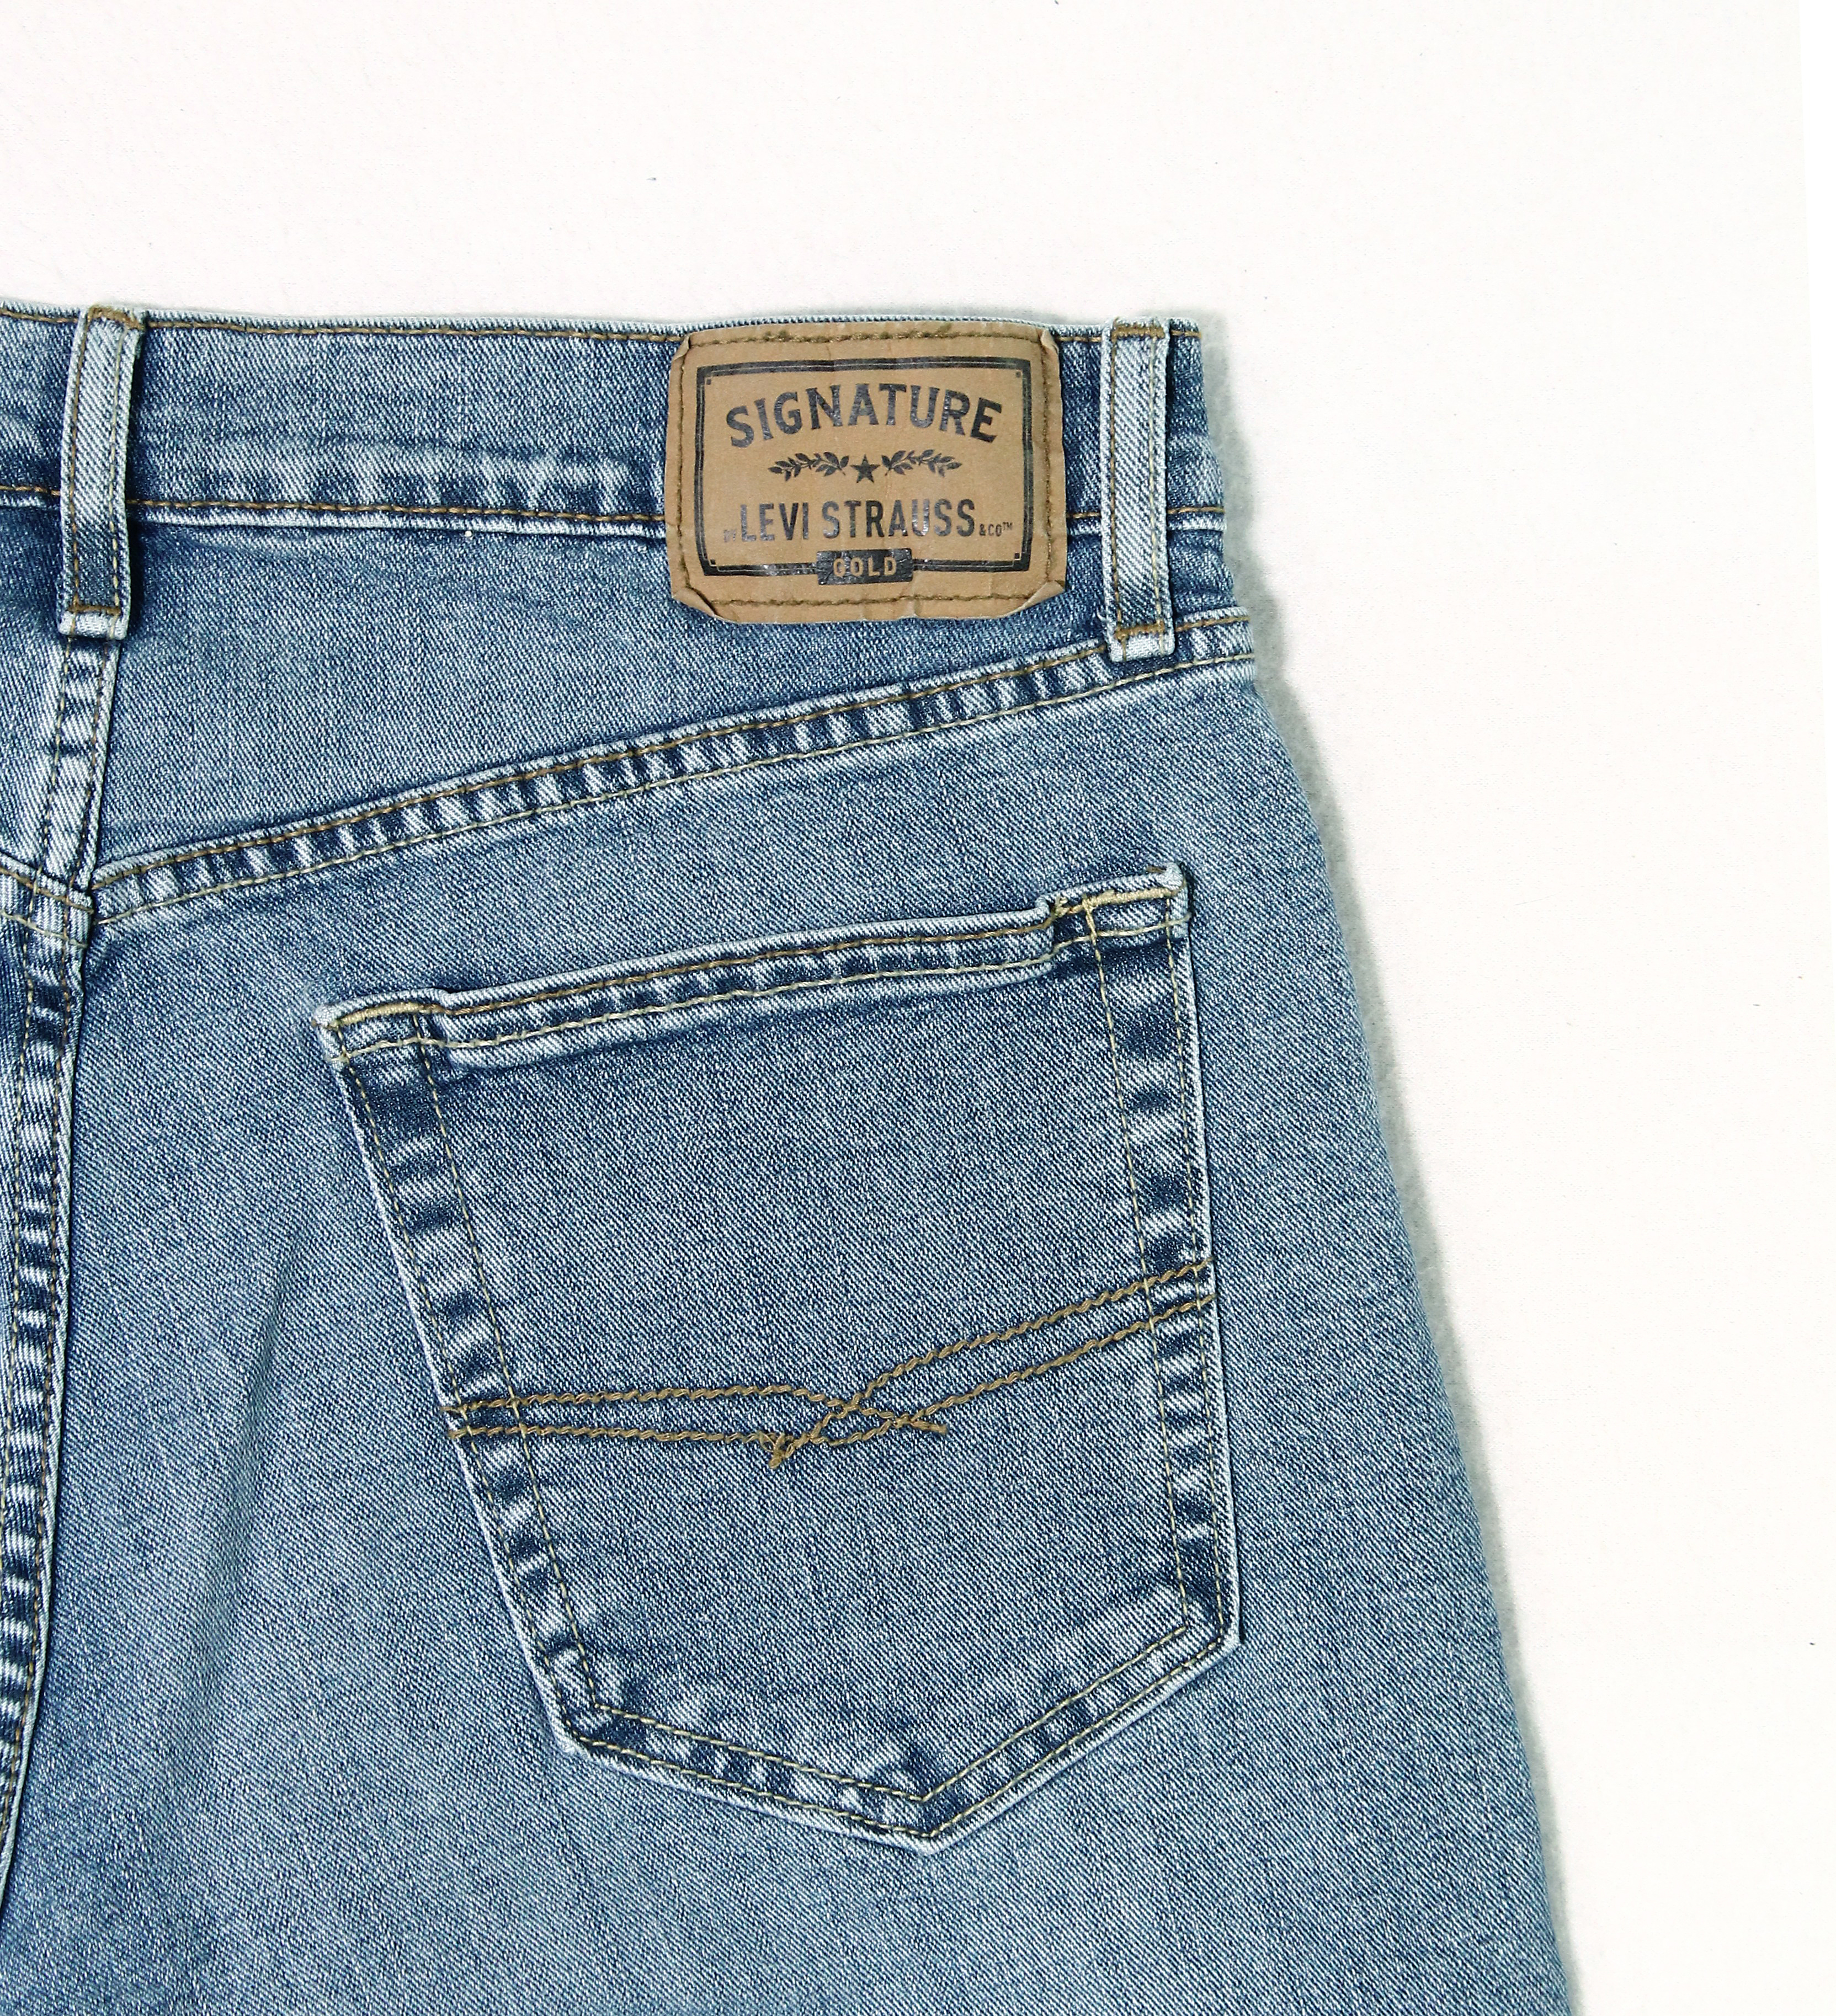 Signature-By-Levi-Strauss-amp-Co-Gold-Label-Titan-Blue-Men-Relaxed-Fit-Jeans thumbnail 6